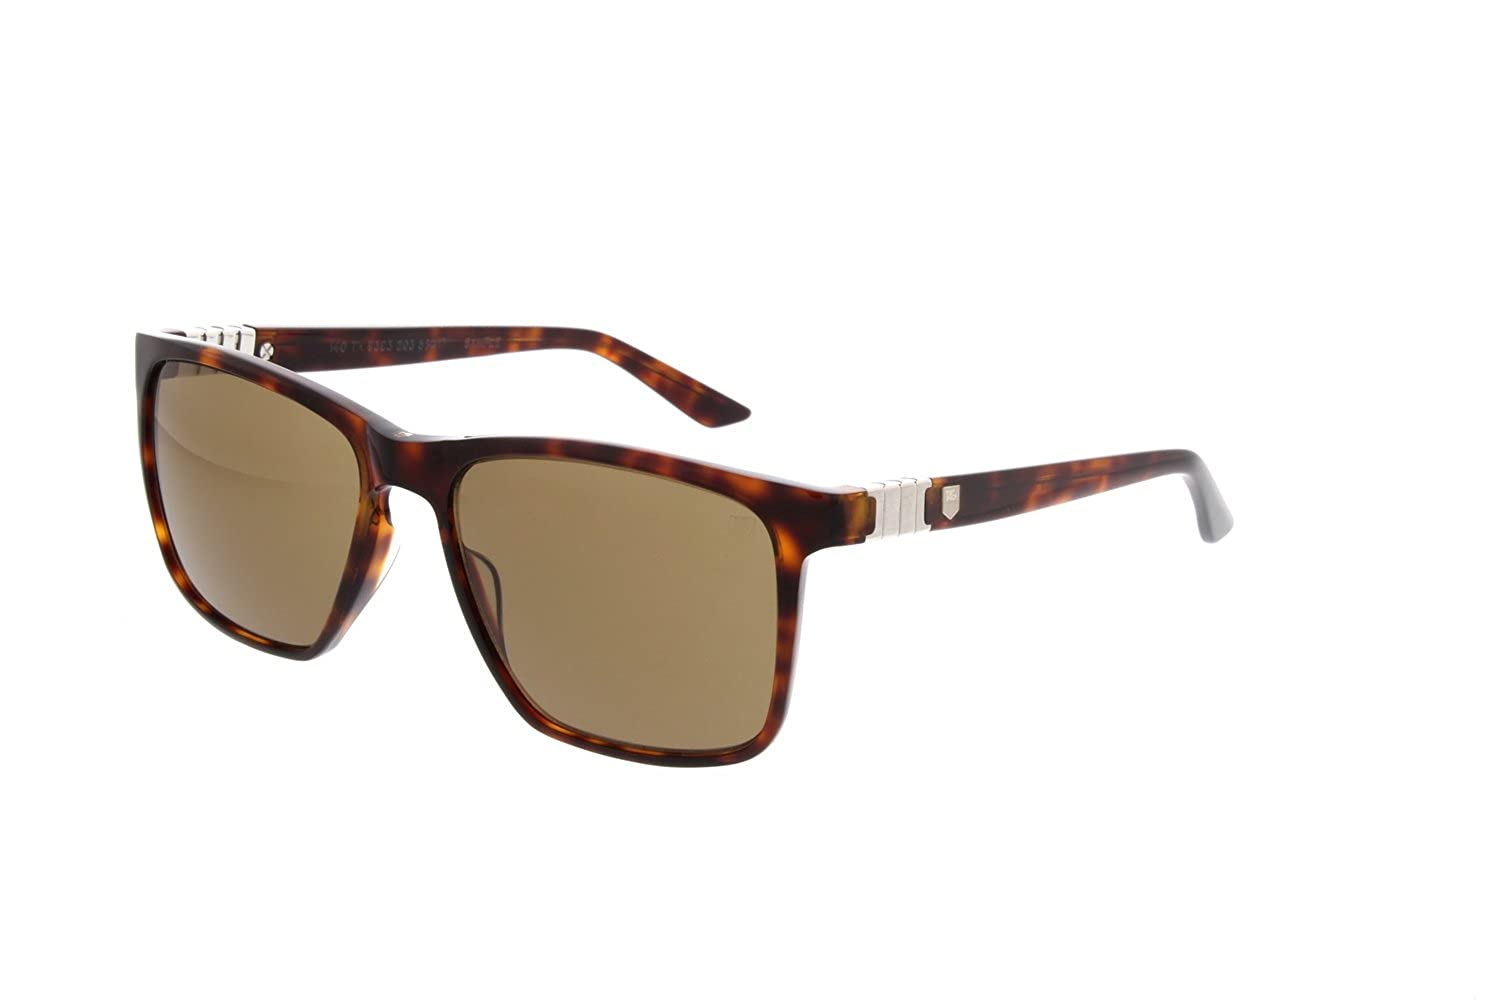 dd1e4cd5b23 Amazon.com  Tag Heuer Legend 9383 203 Square Sunglasses